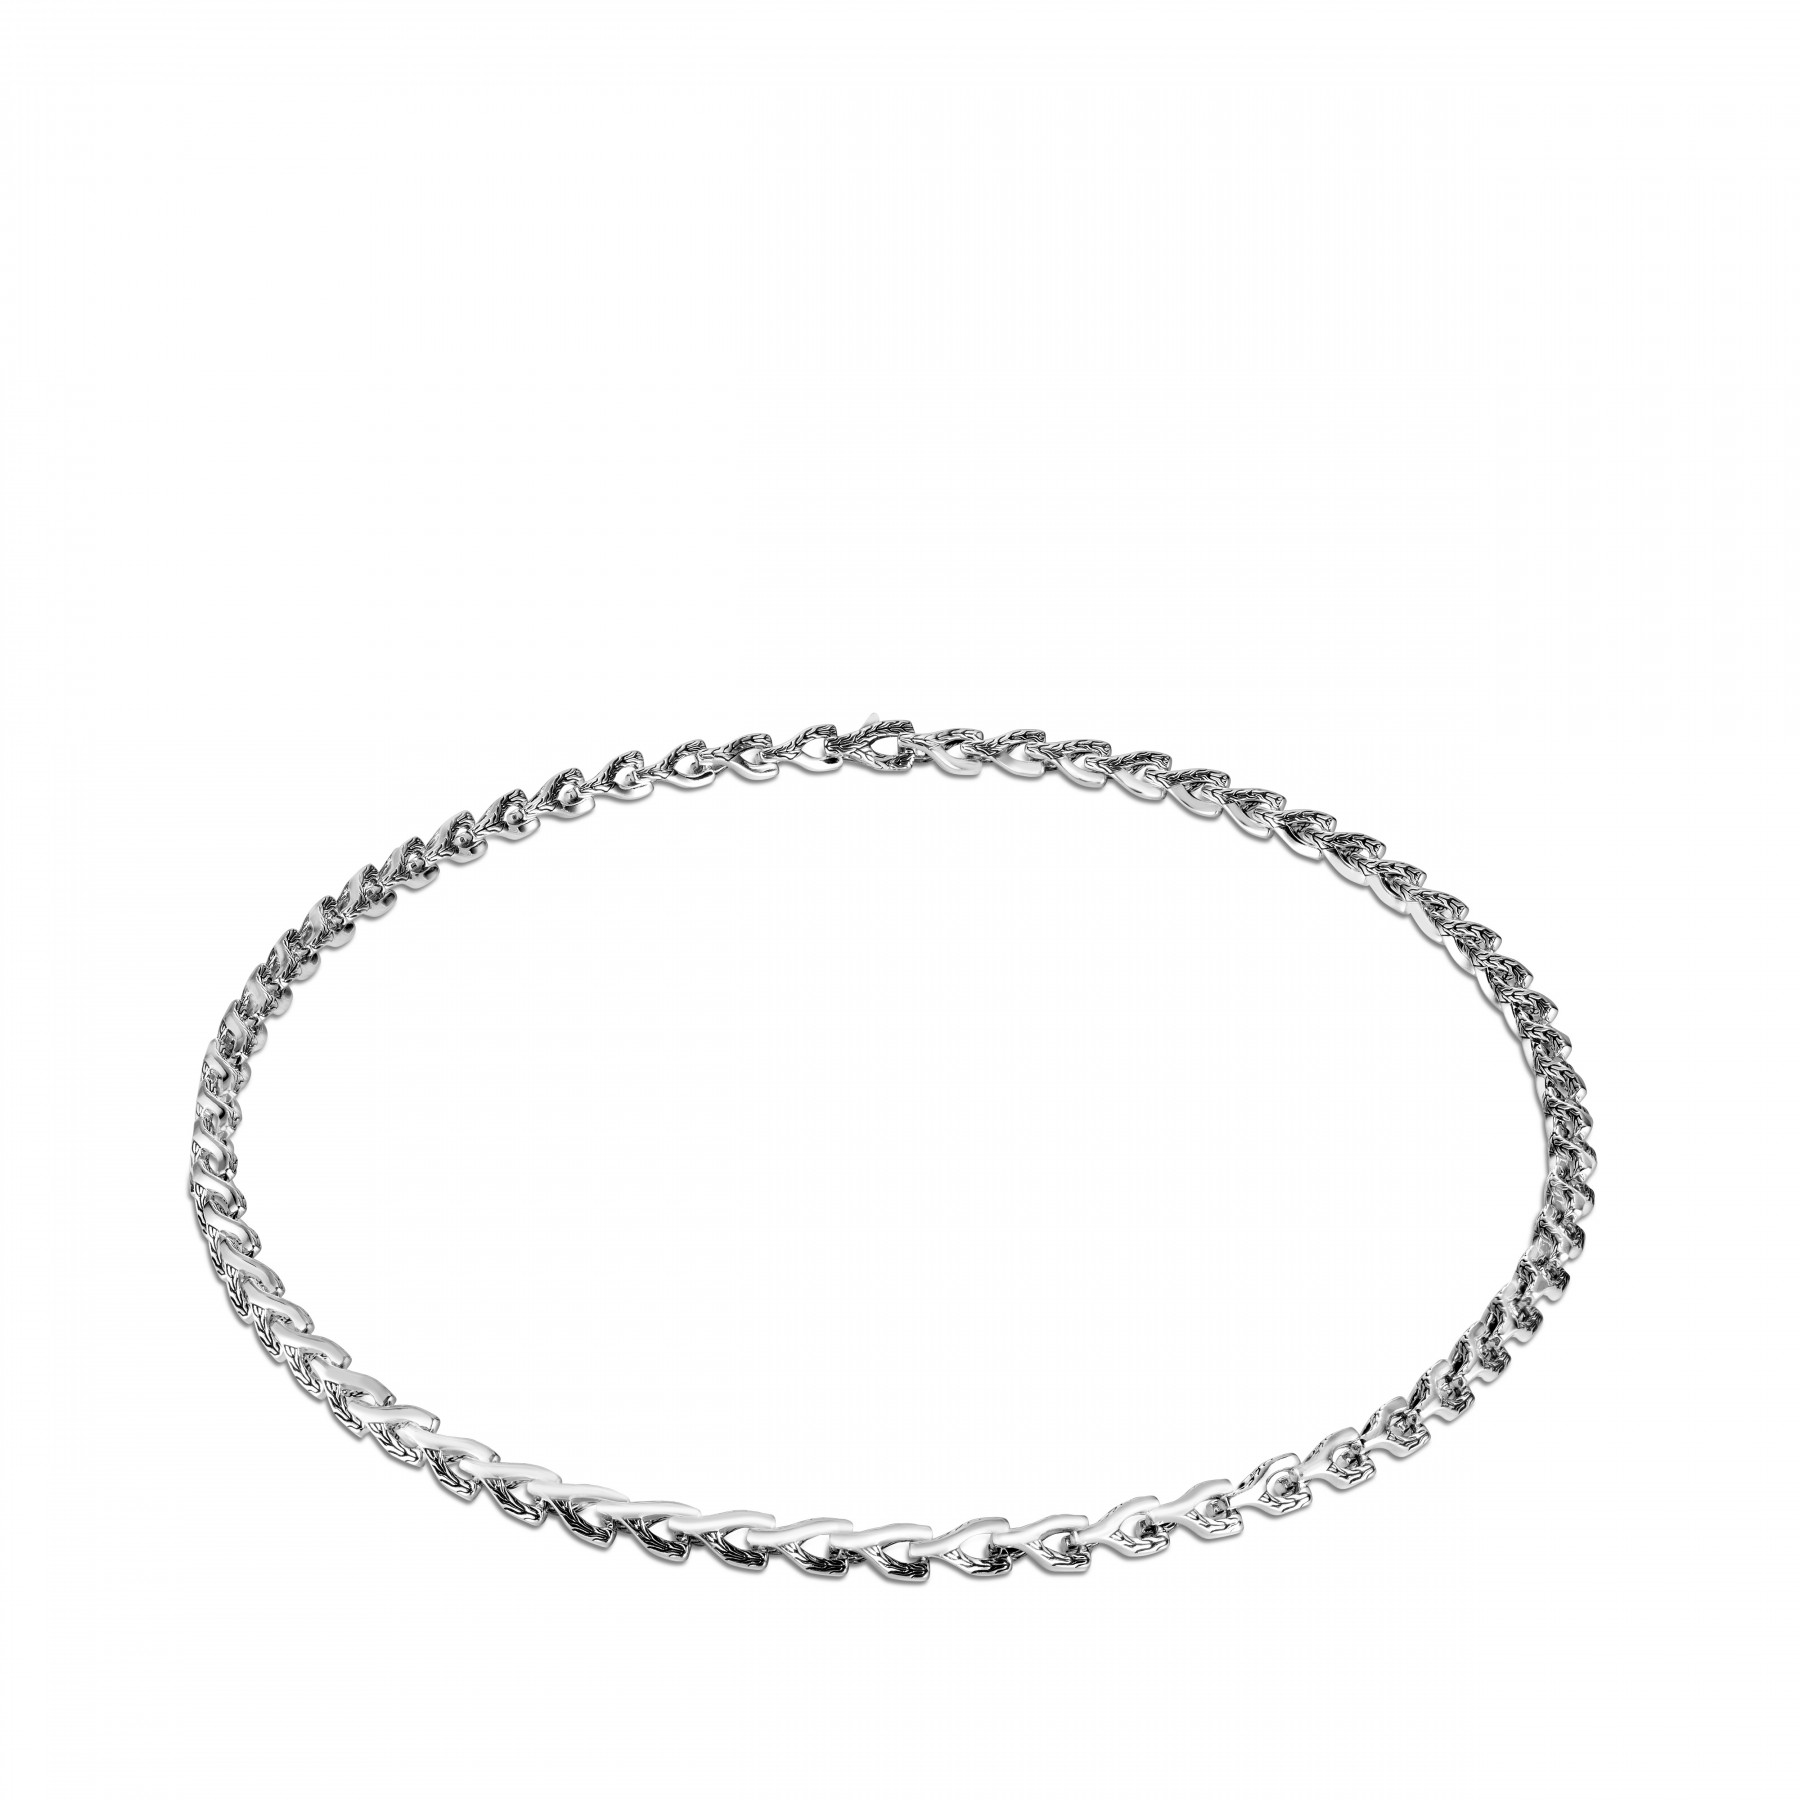 John Hardy Asli Classic Chain Silver Link Necklace - 7mm front view